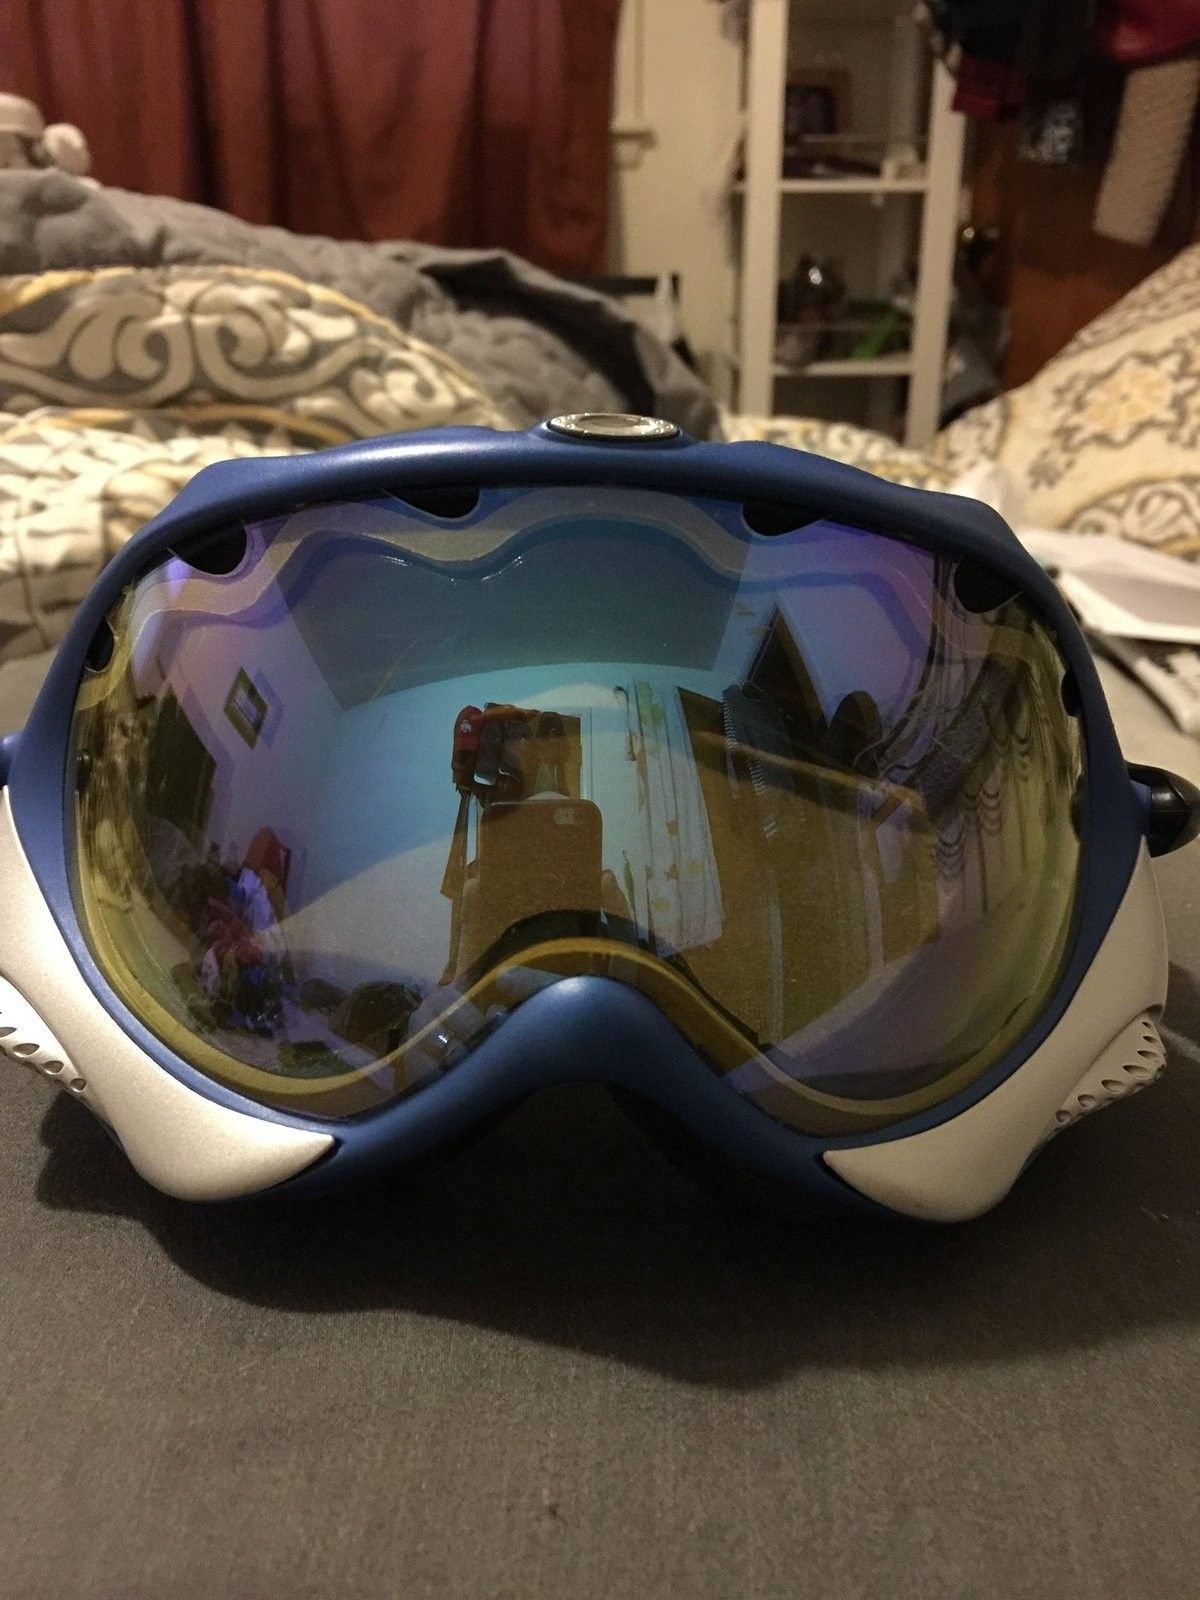 Wisdom Snow Goggles FINAL PRICE DROP - image.jpg